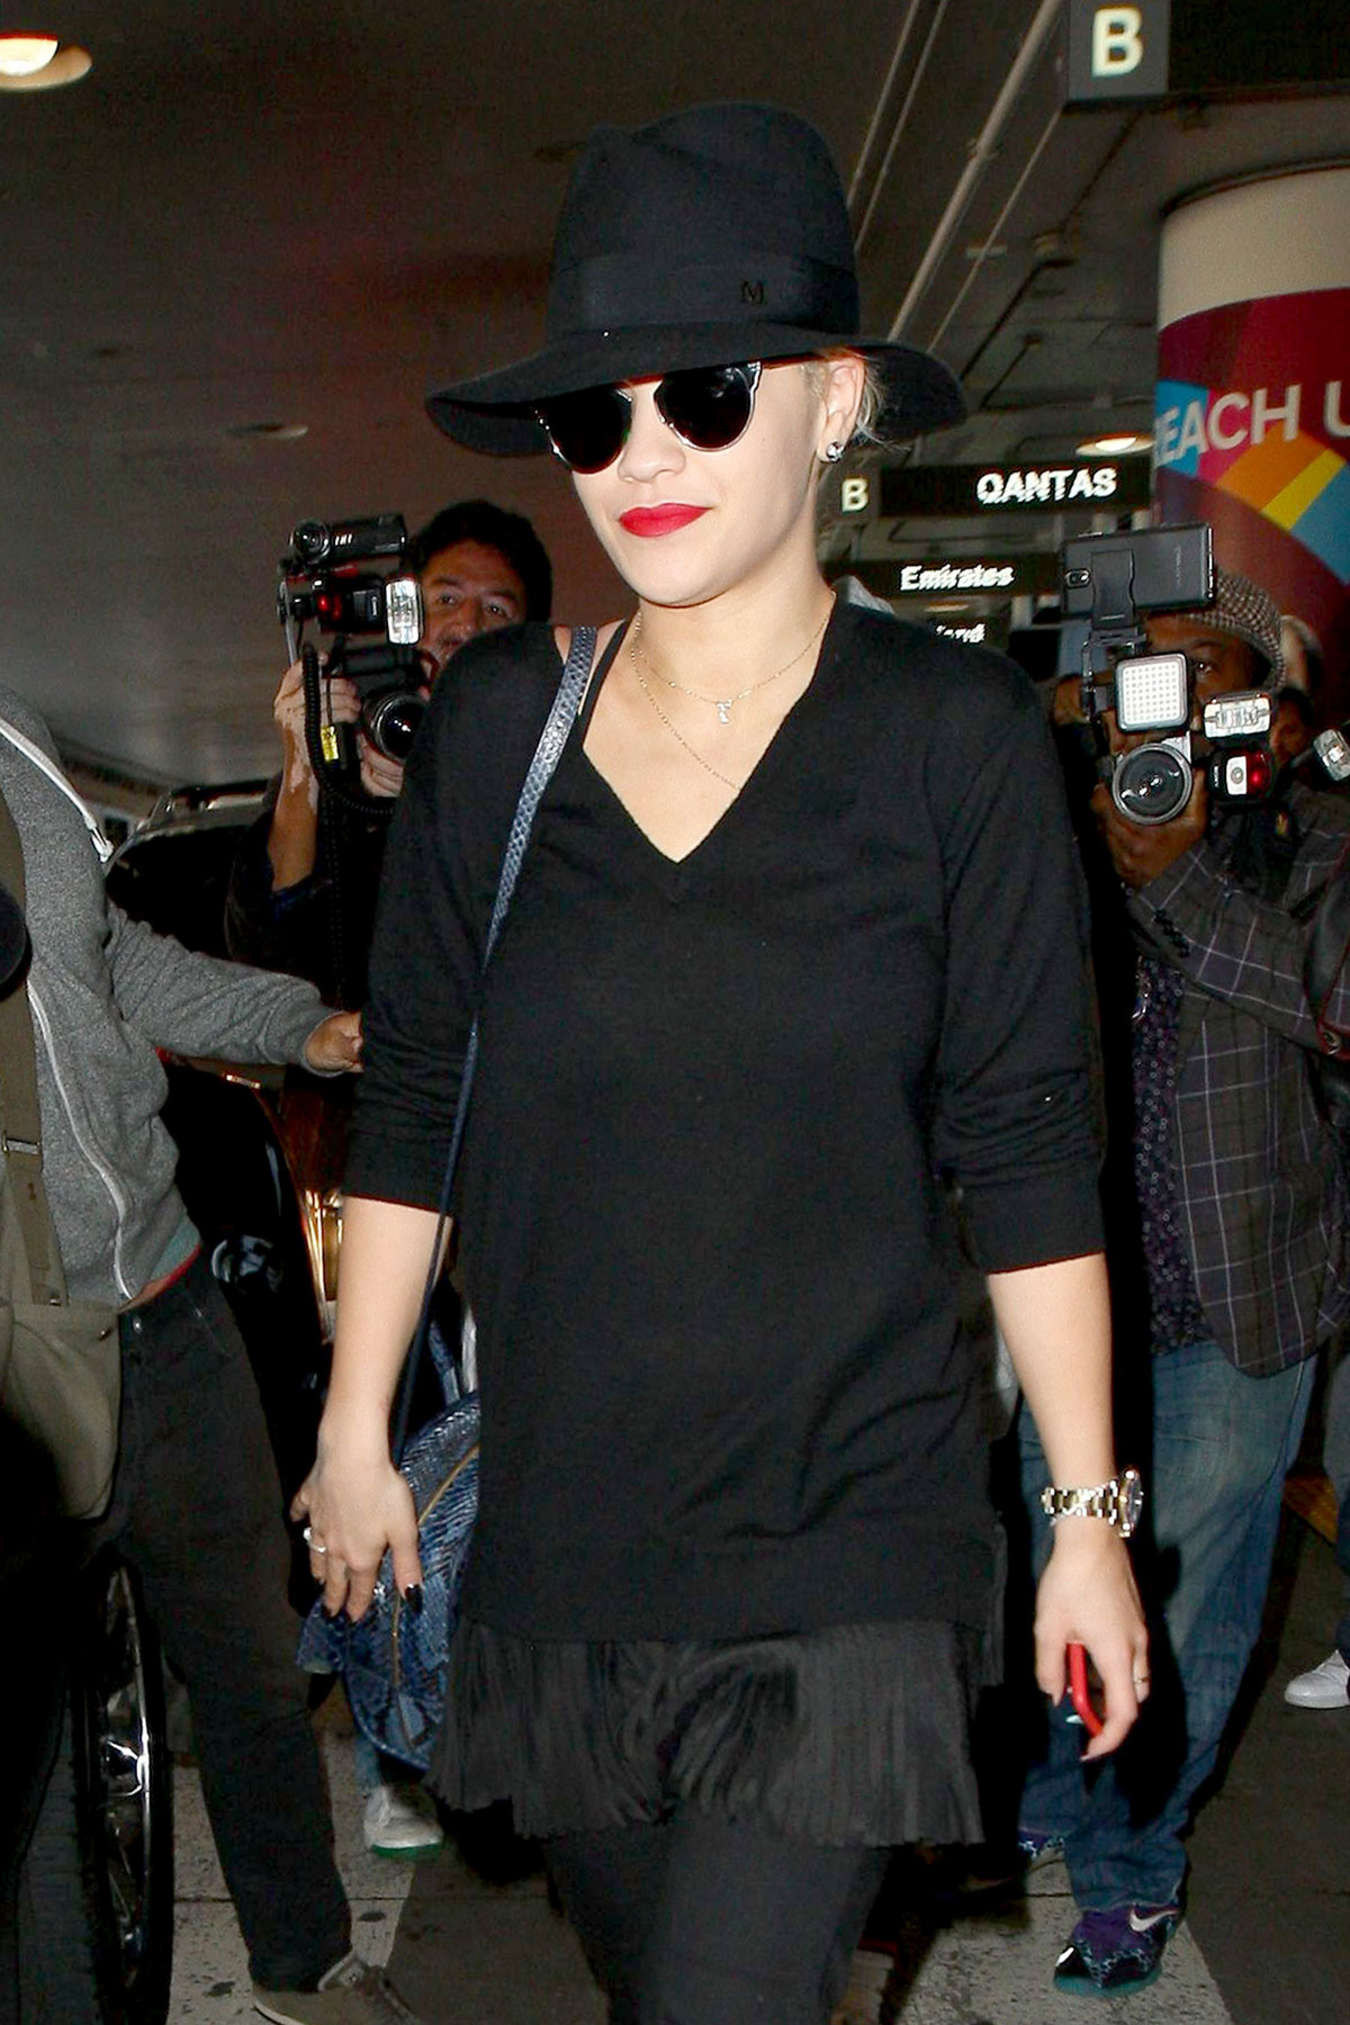 Rita Ora in Black Arrives at LAX Airport in Los Angeles